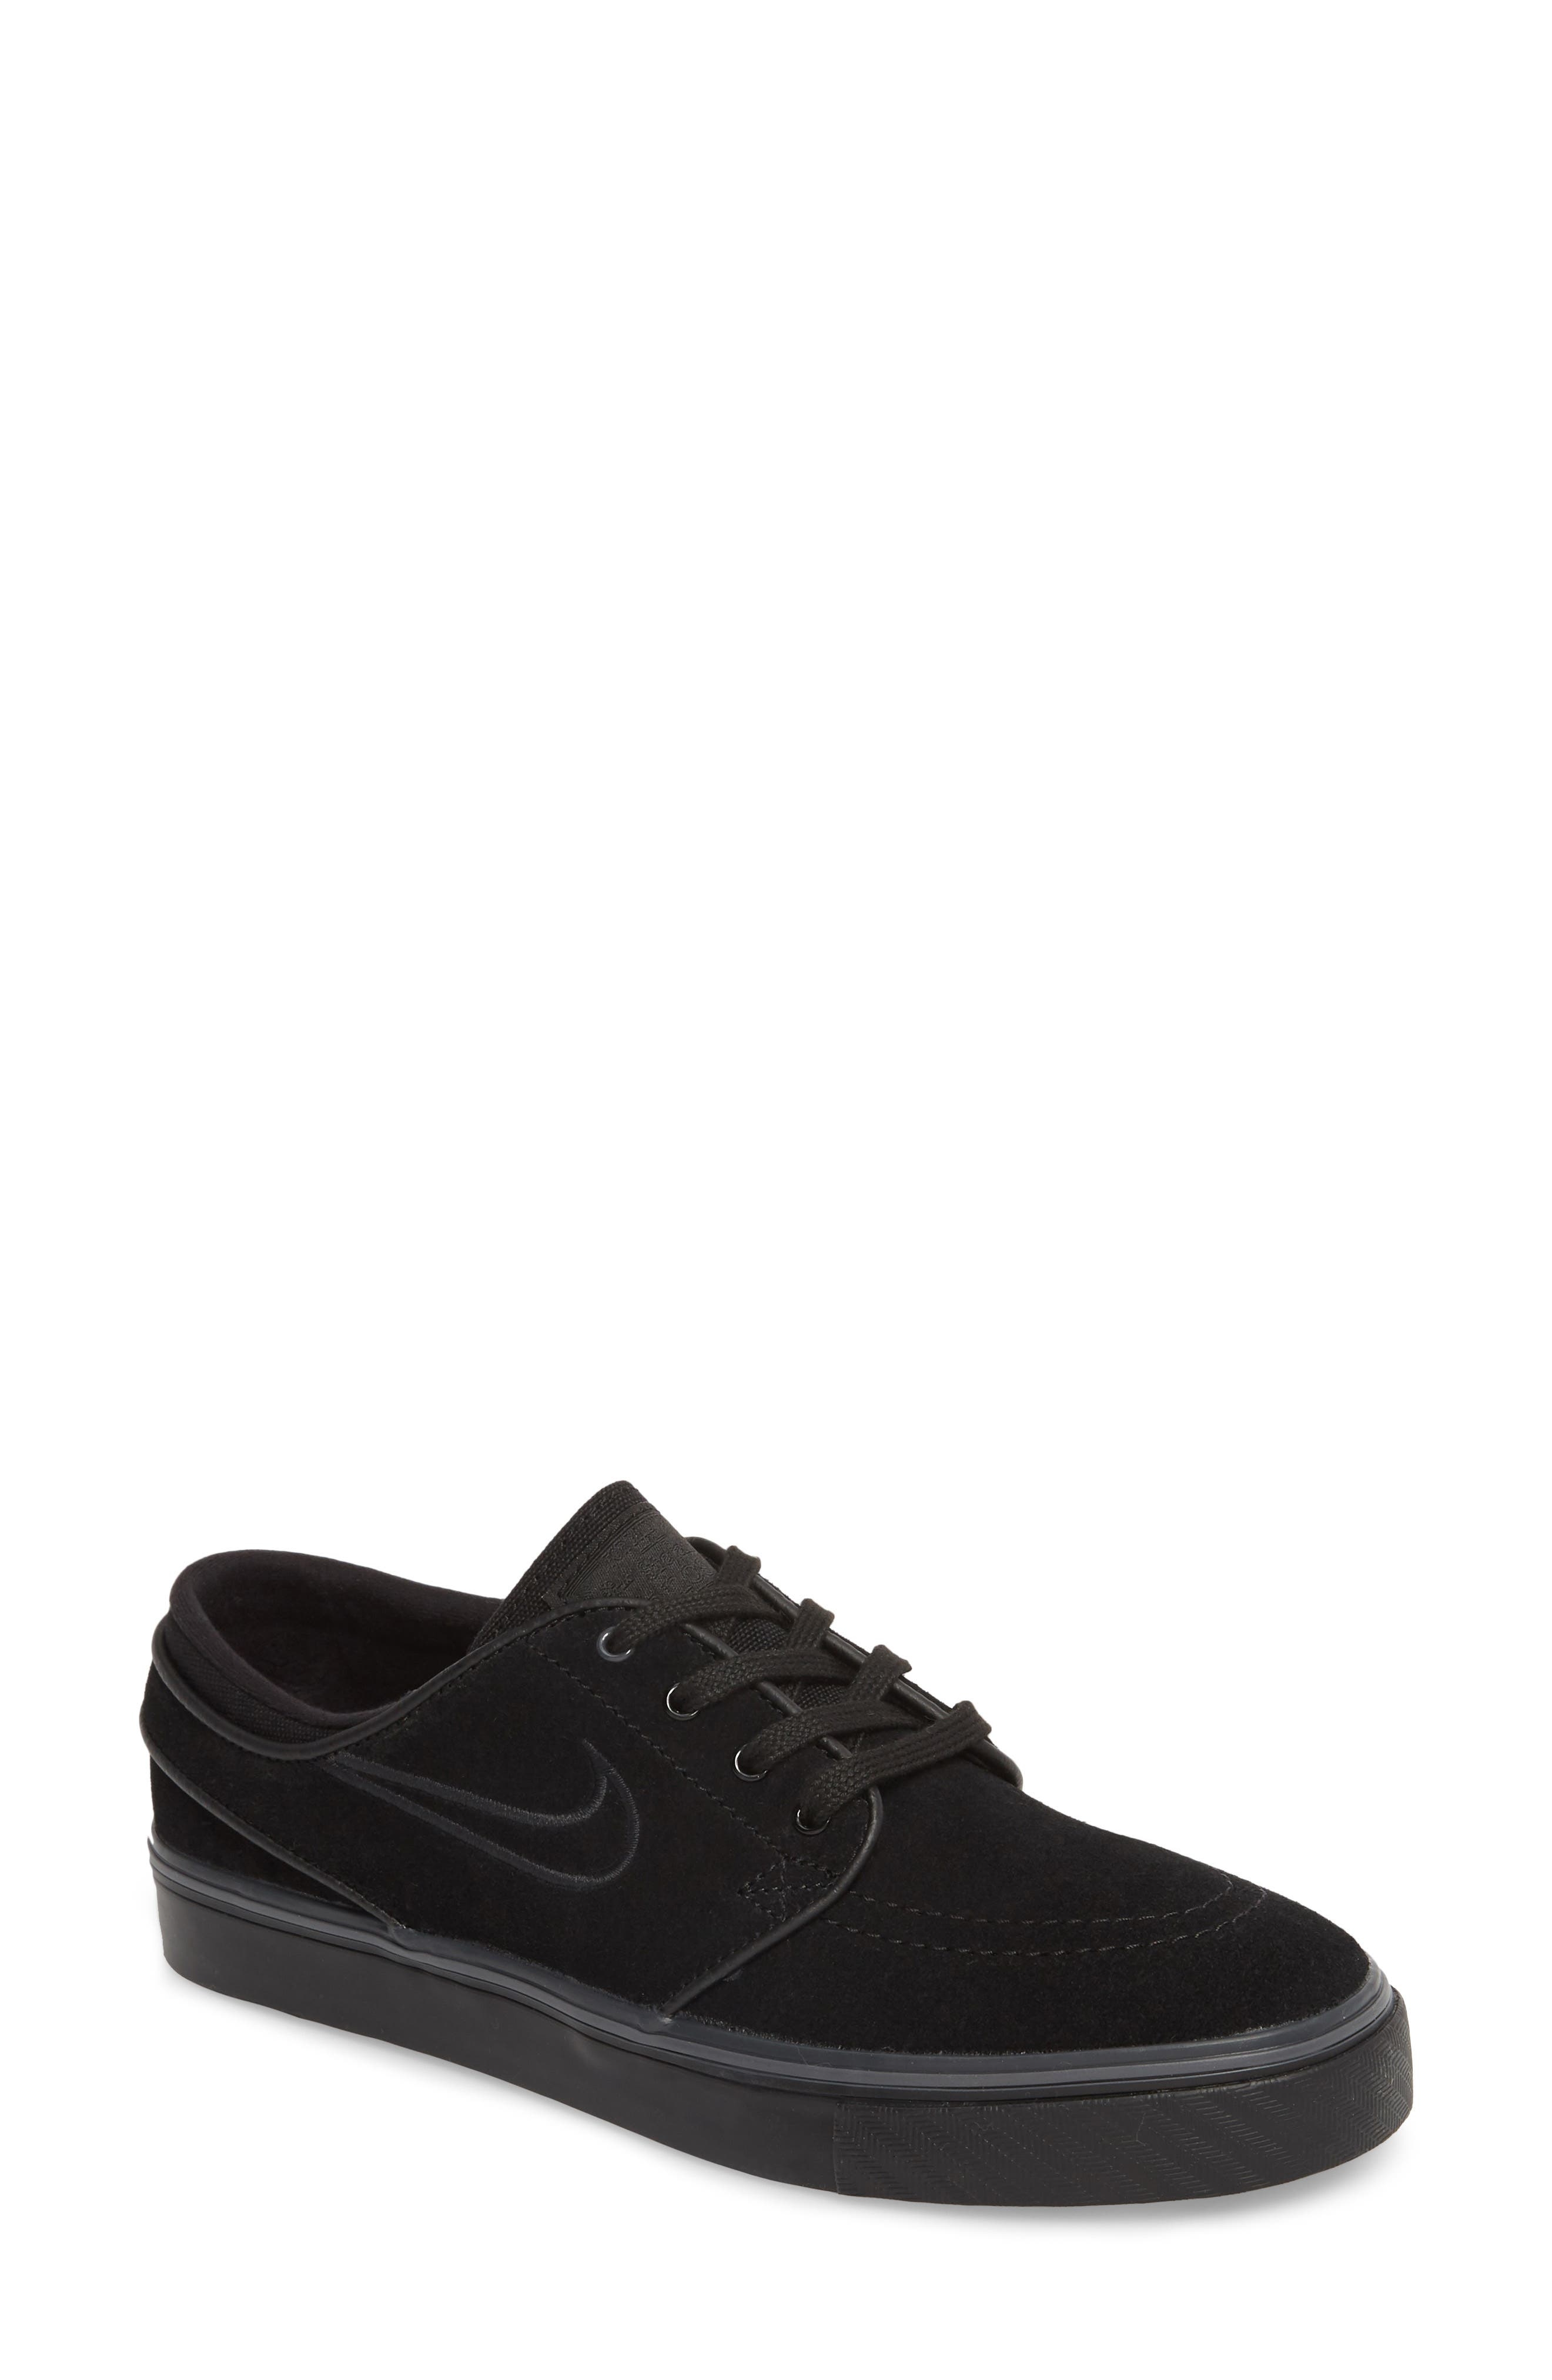 SB Air Zoom Stefan Janoski Skate Sneaker,                         Main,                         color, Black/ Black/ Black